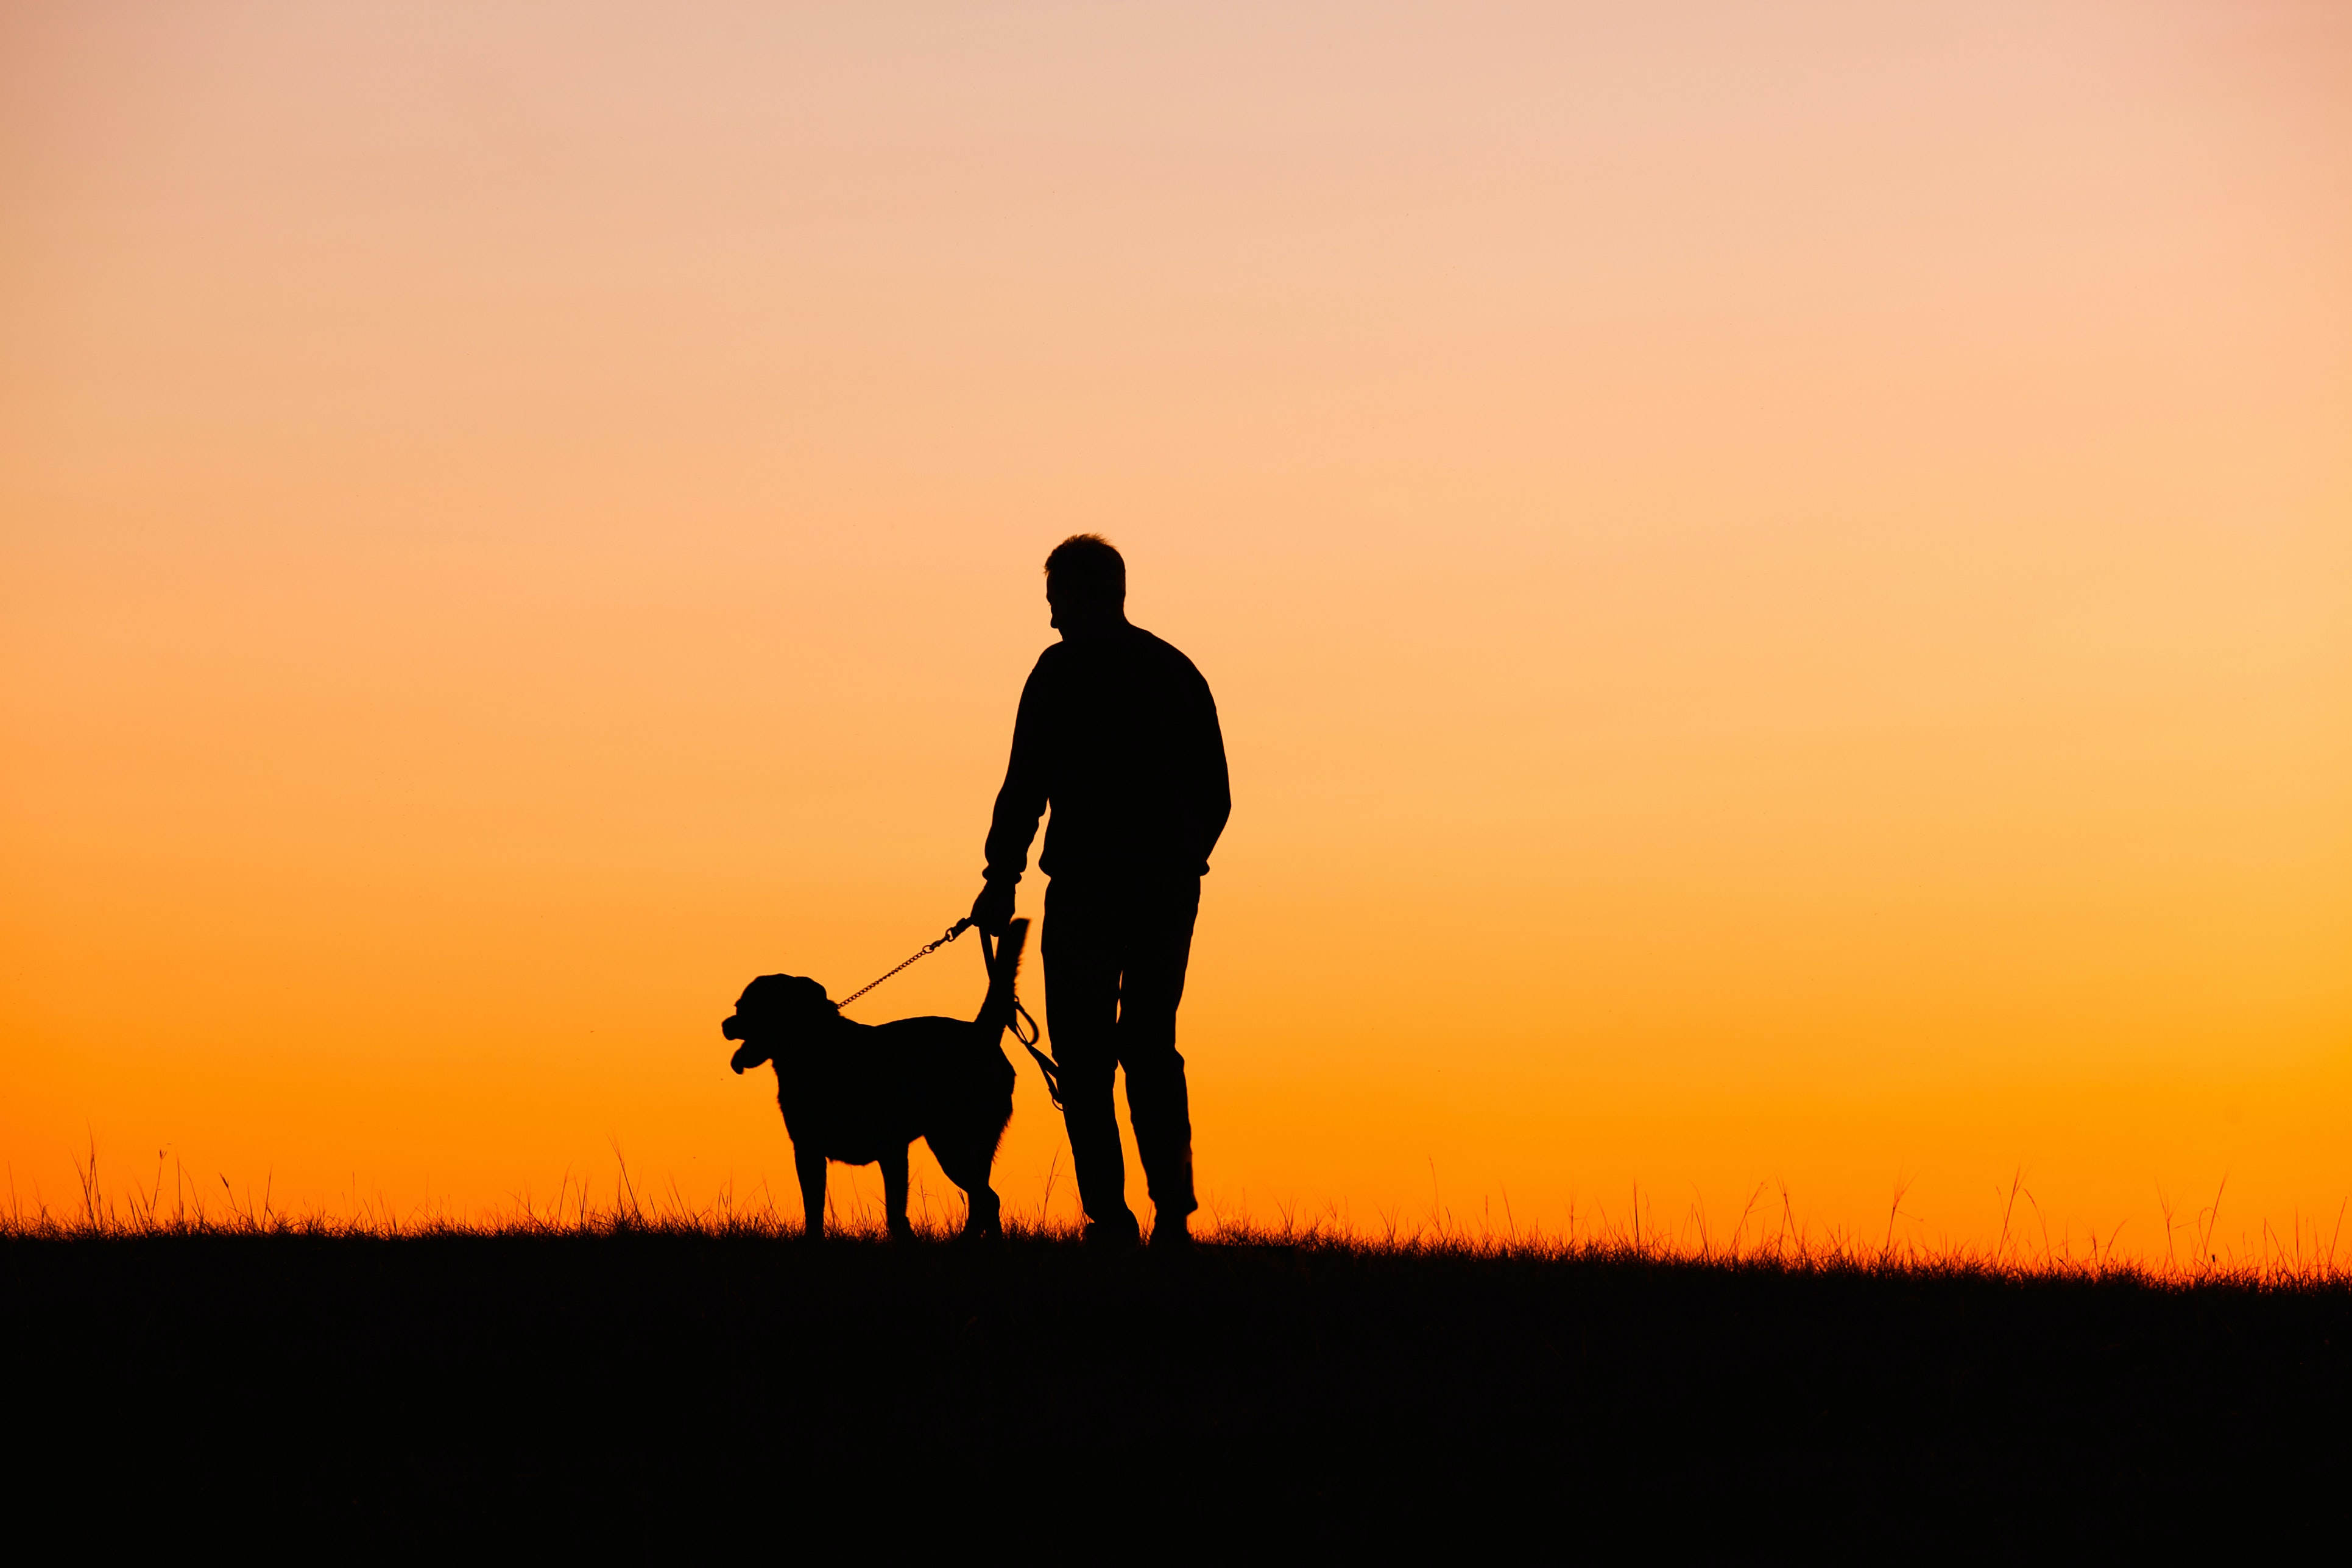 Why grief over loss of pet so intense